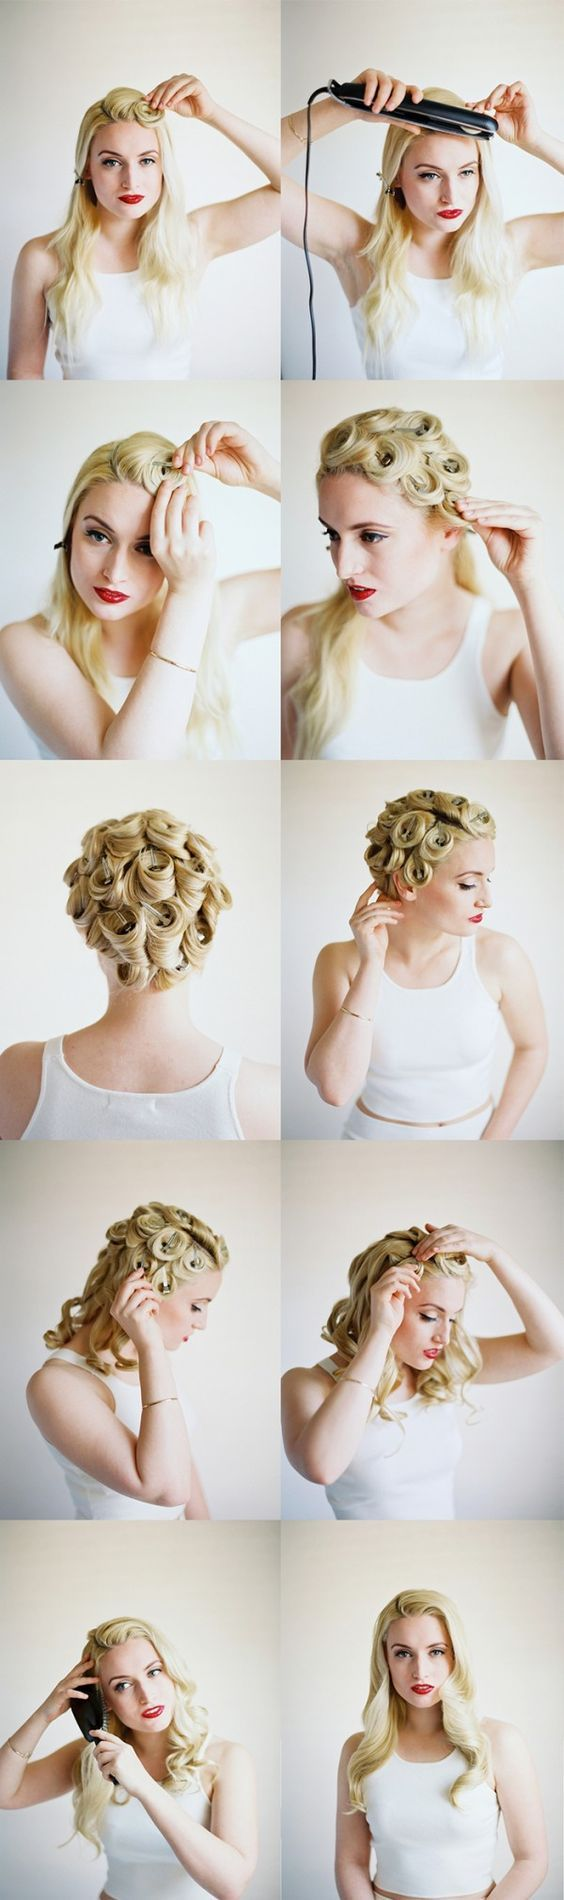 16 Seriously Chic Vintage Wedding Hairstyles | Retro wedding ...